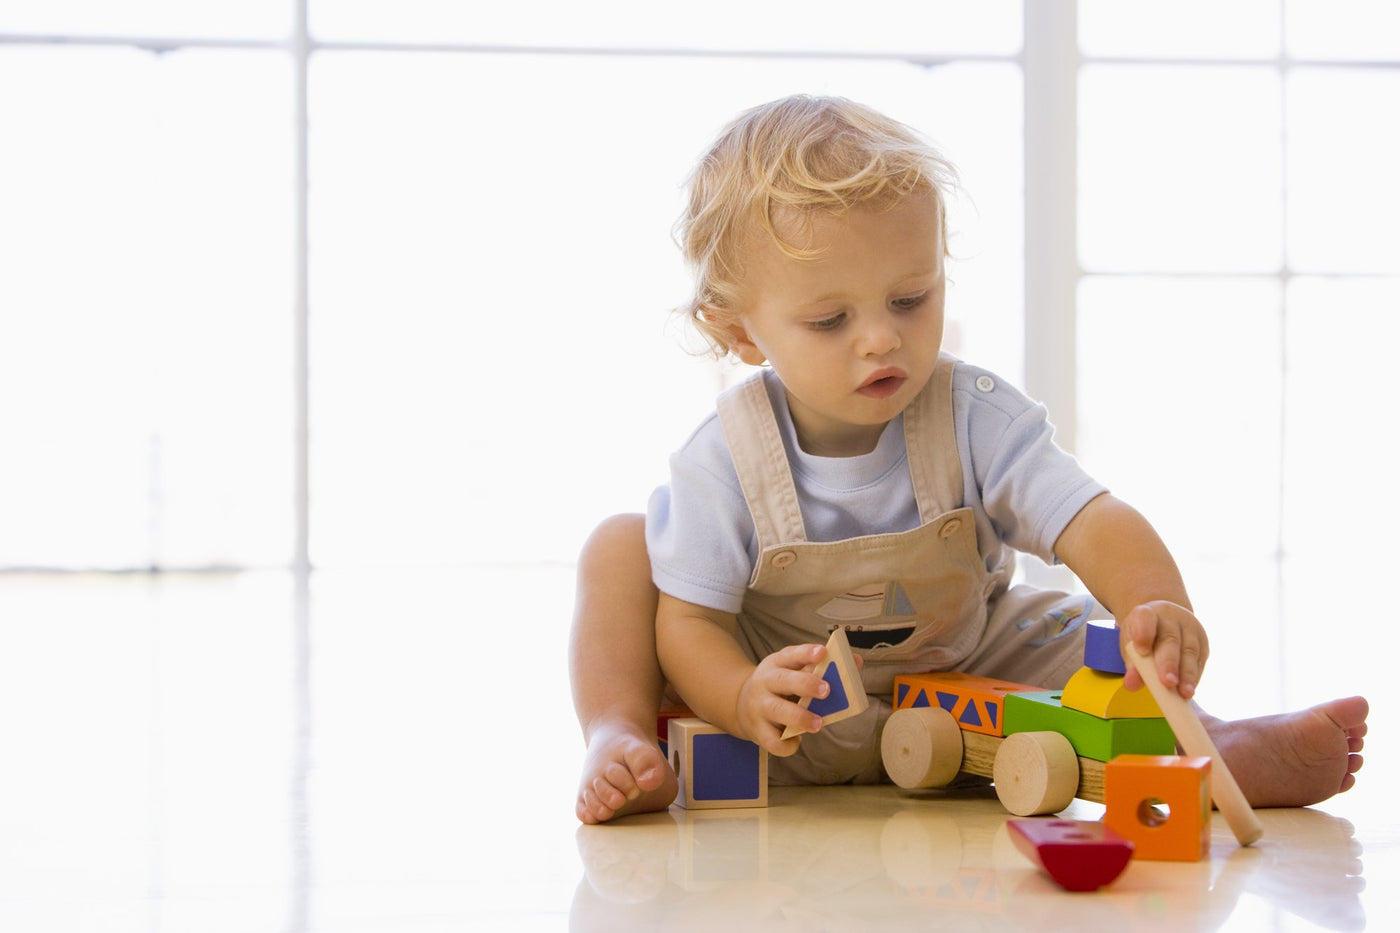 Stem Toys and Educational Toys for 1 Year Olds